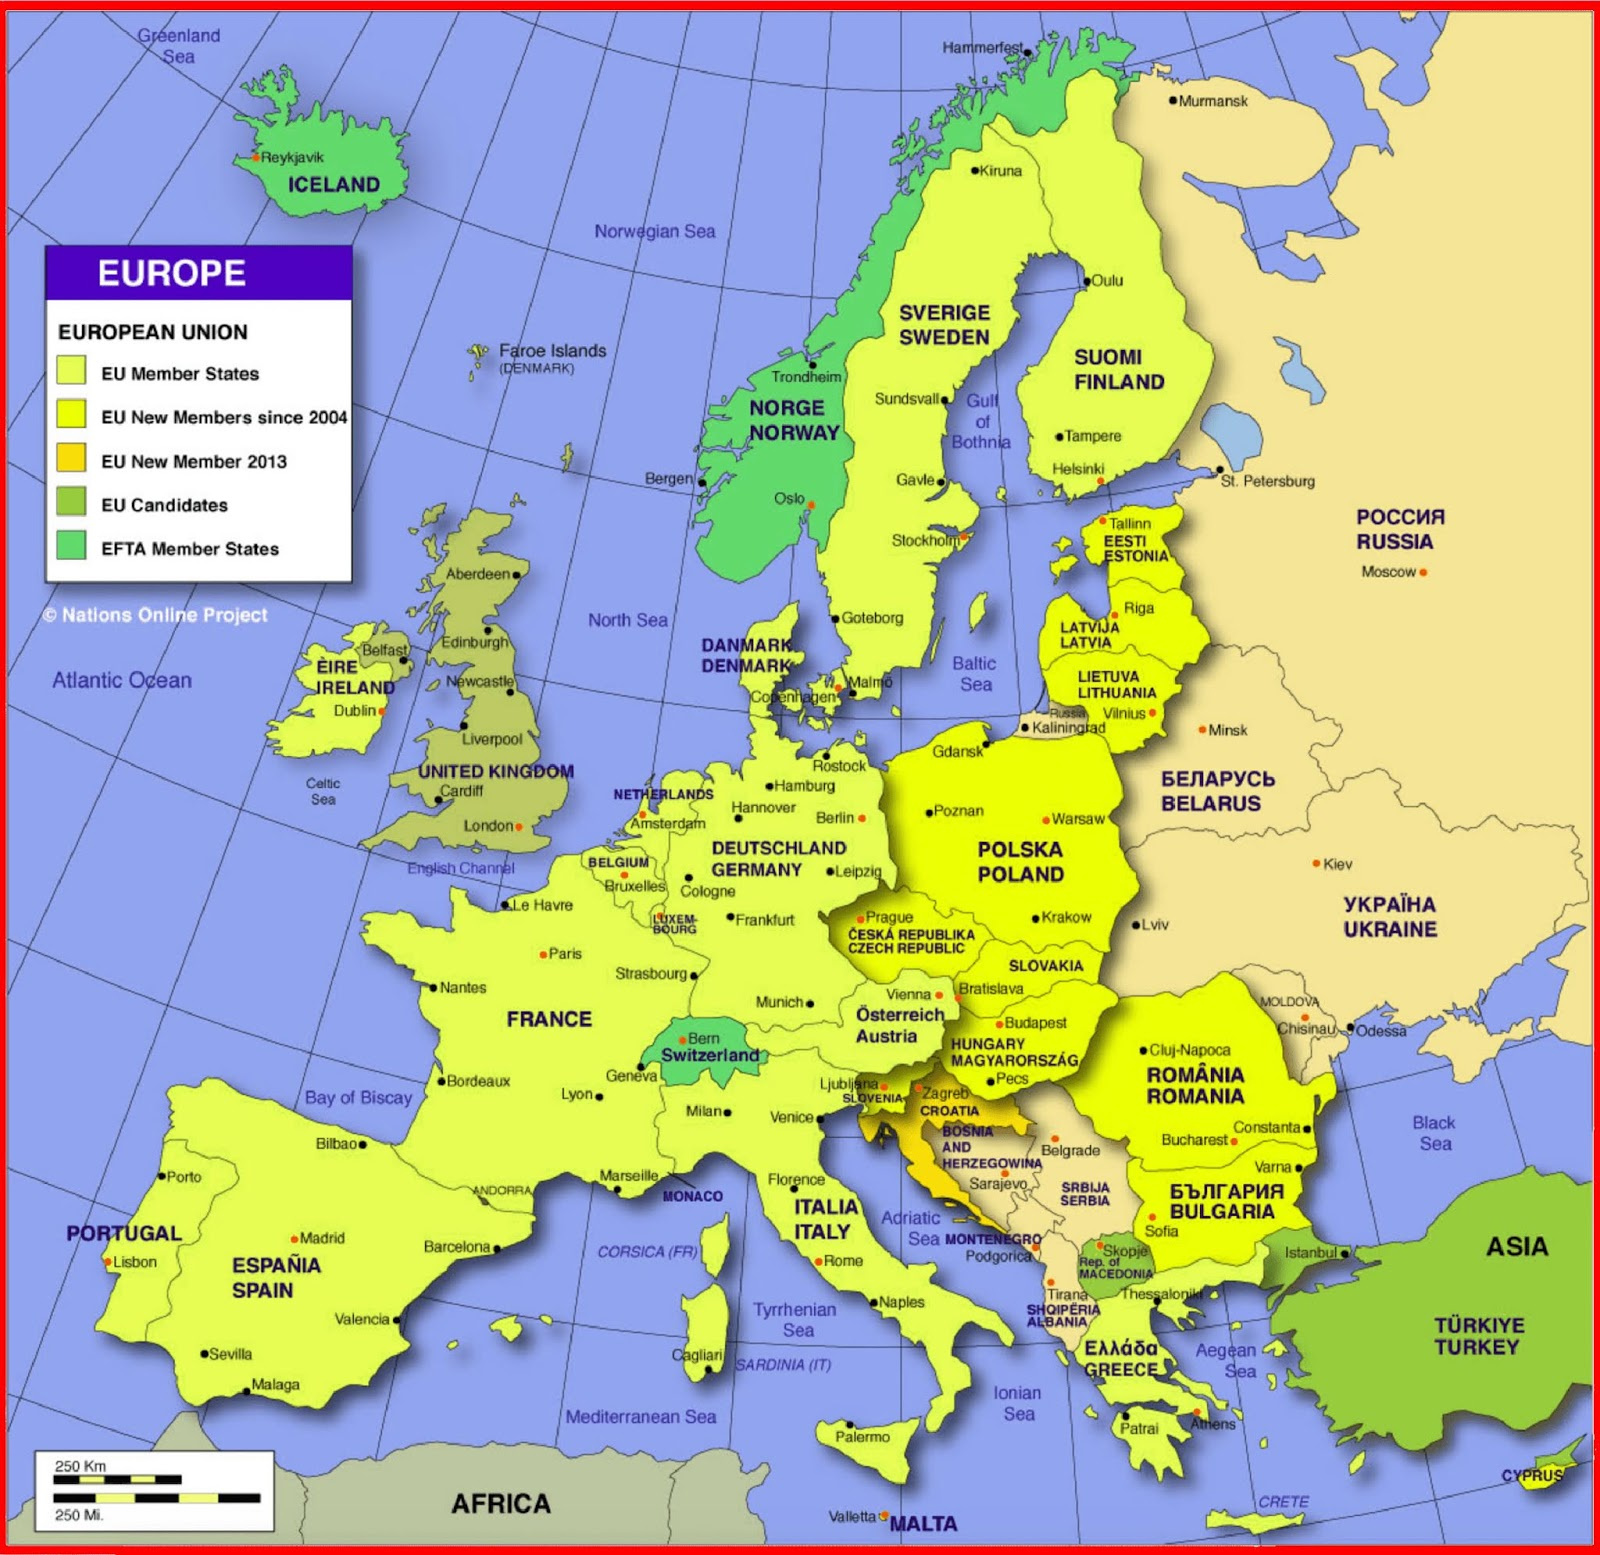 image: Europe Countries Map